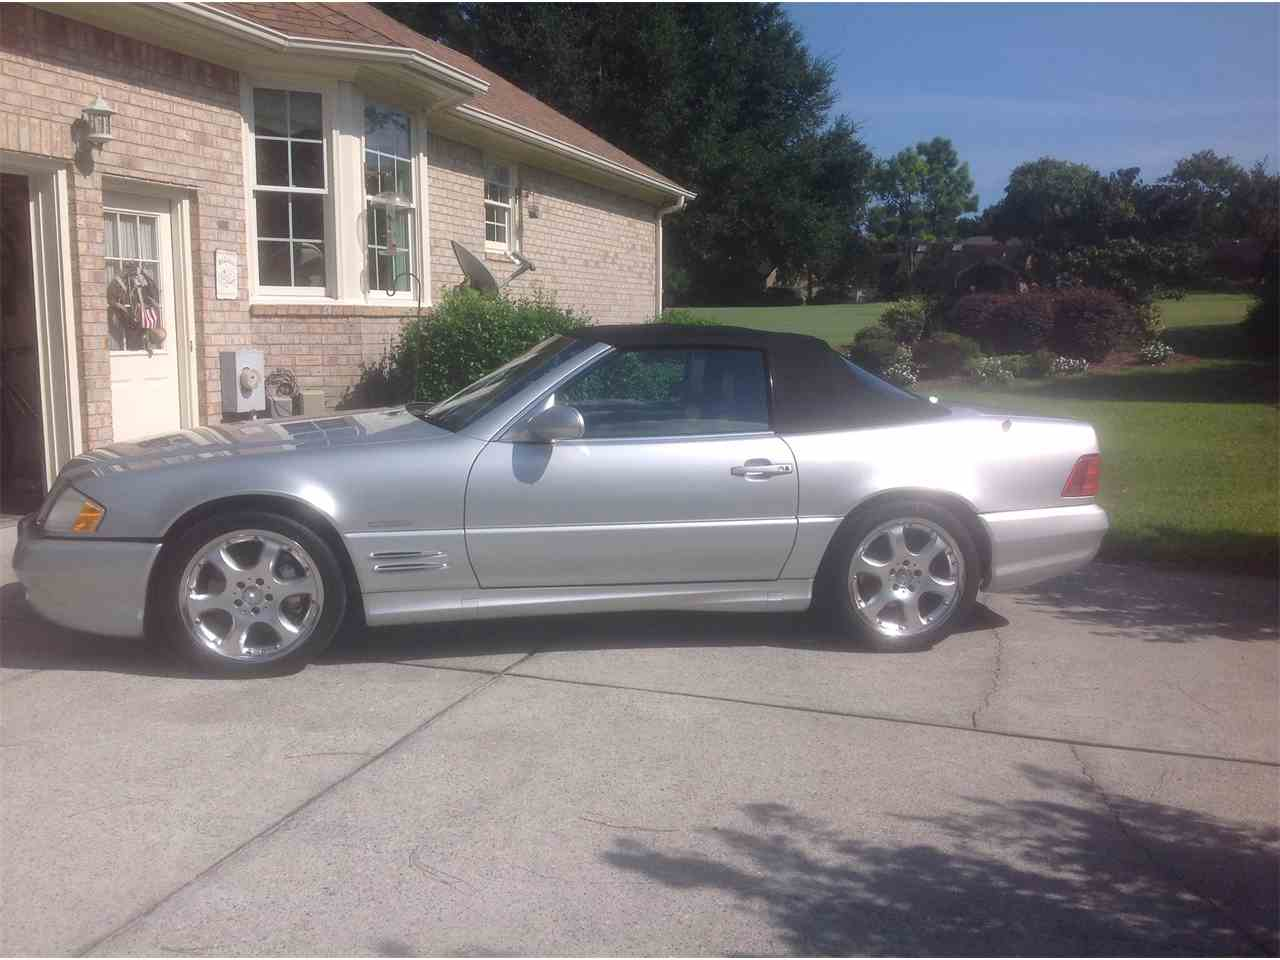 Large Picture of '02 Mercedes-Benz SL 500 SILVER ARROW located in North Carolina - $21,000.00 Offered by a Private Seller - J692